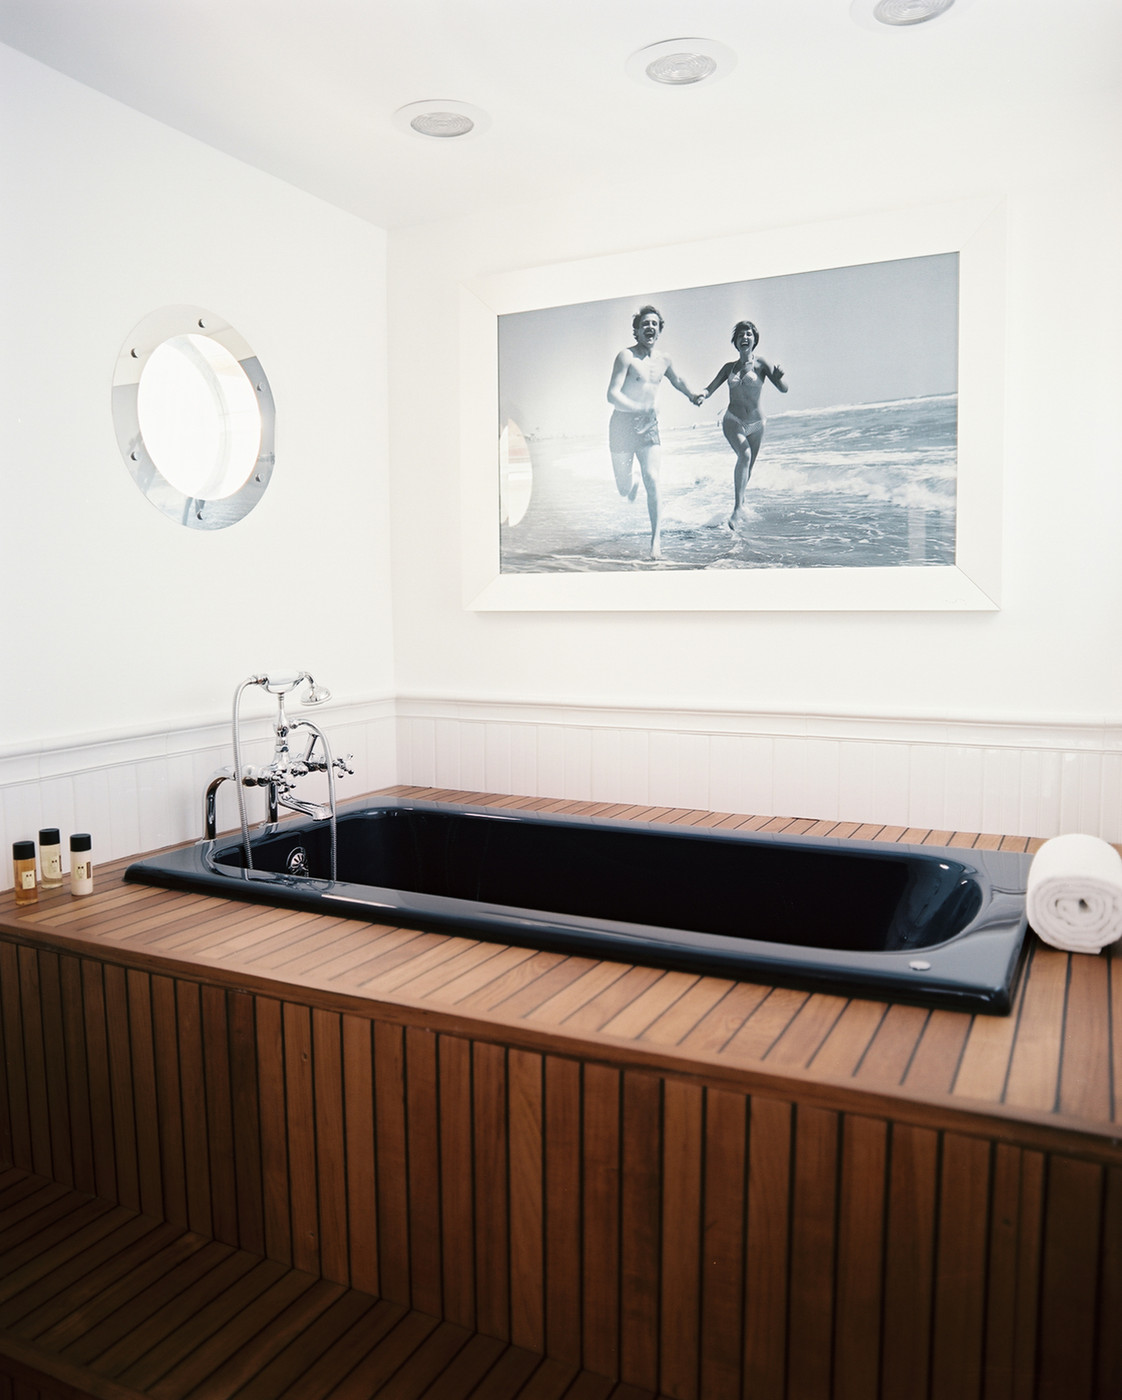 Wood Bathtub Photos, Design, Ideas, Remodel, and Decor - Lonny